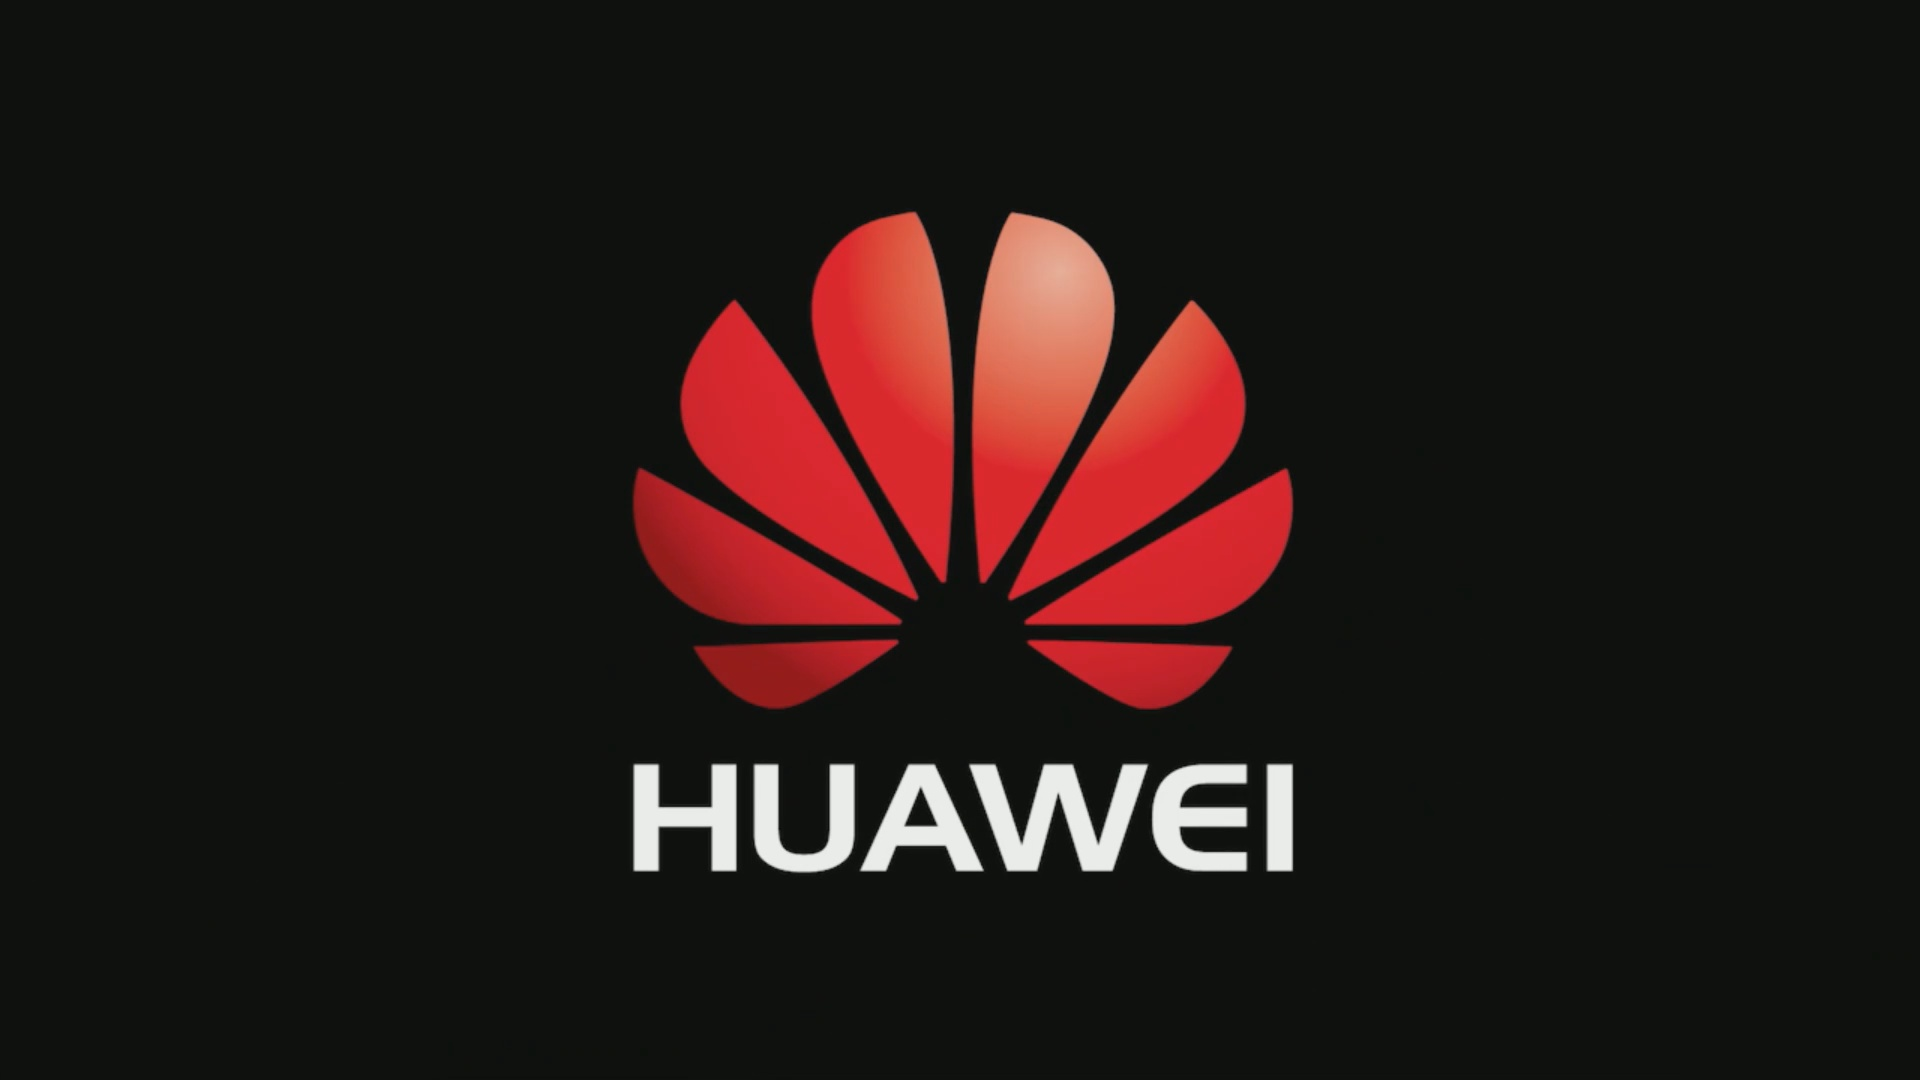 Fixed - Sound Not Works on Huawei G7300 phone